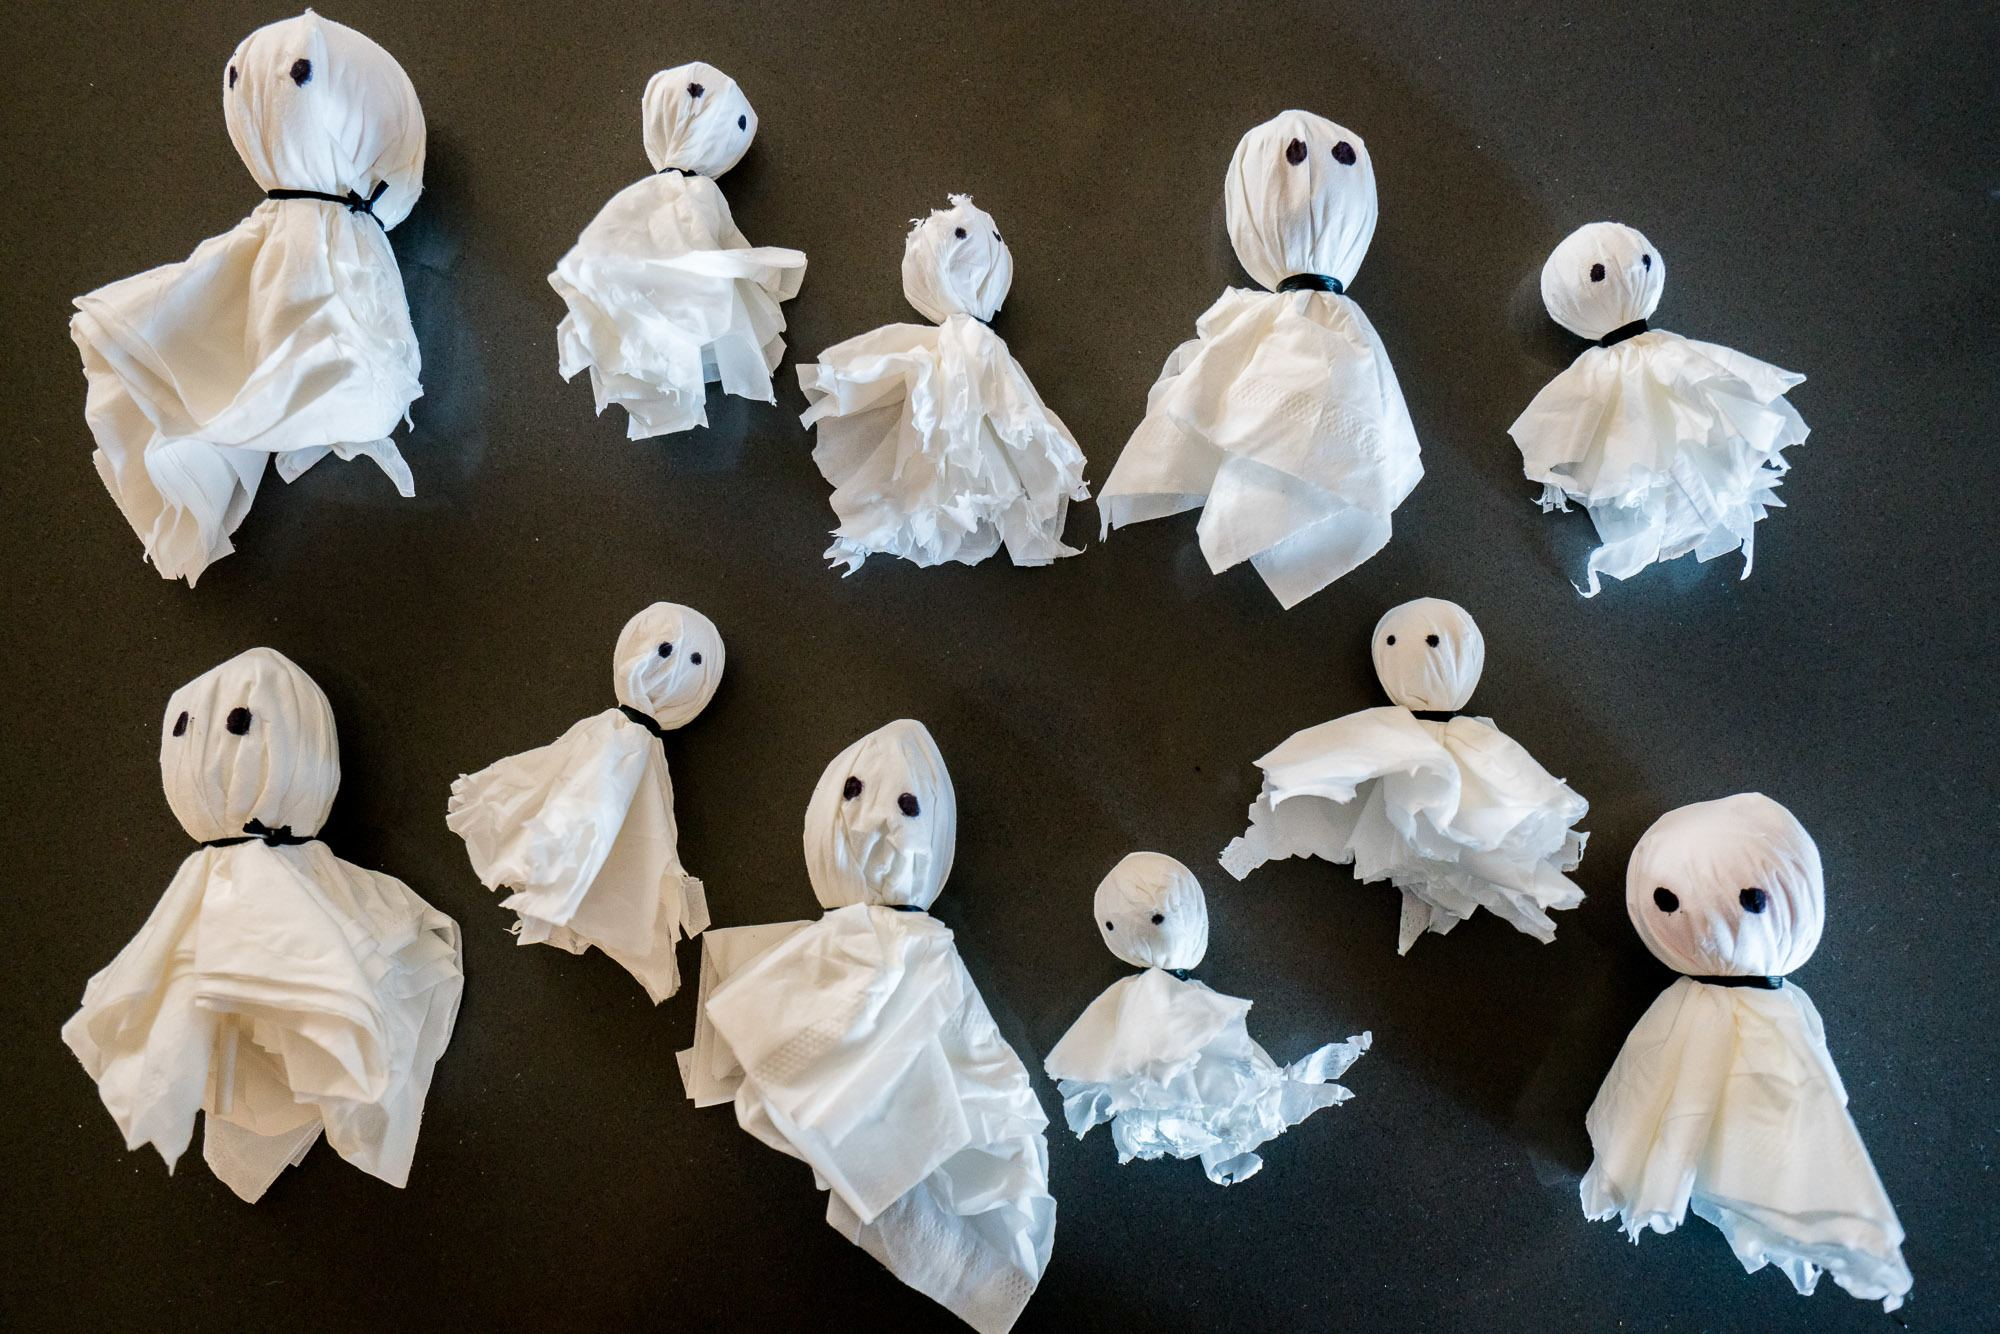 Wrap toys and lollipops up like little ghosts. Place them around the house or backyard and let the kids hunt for them.